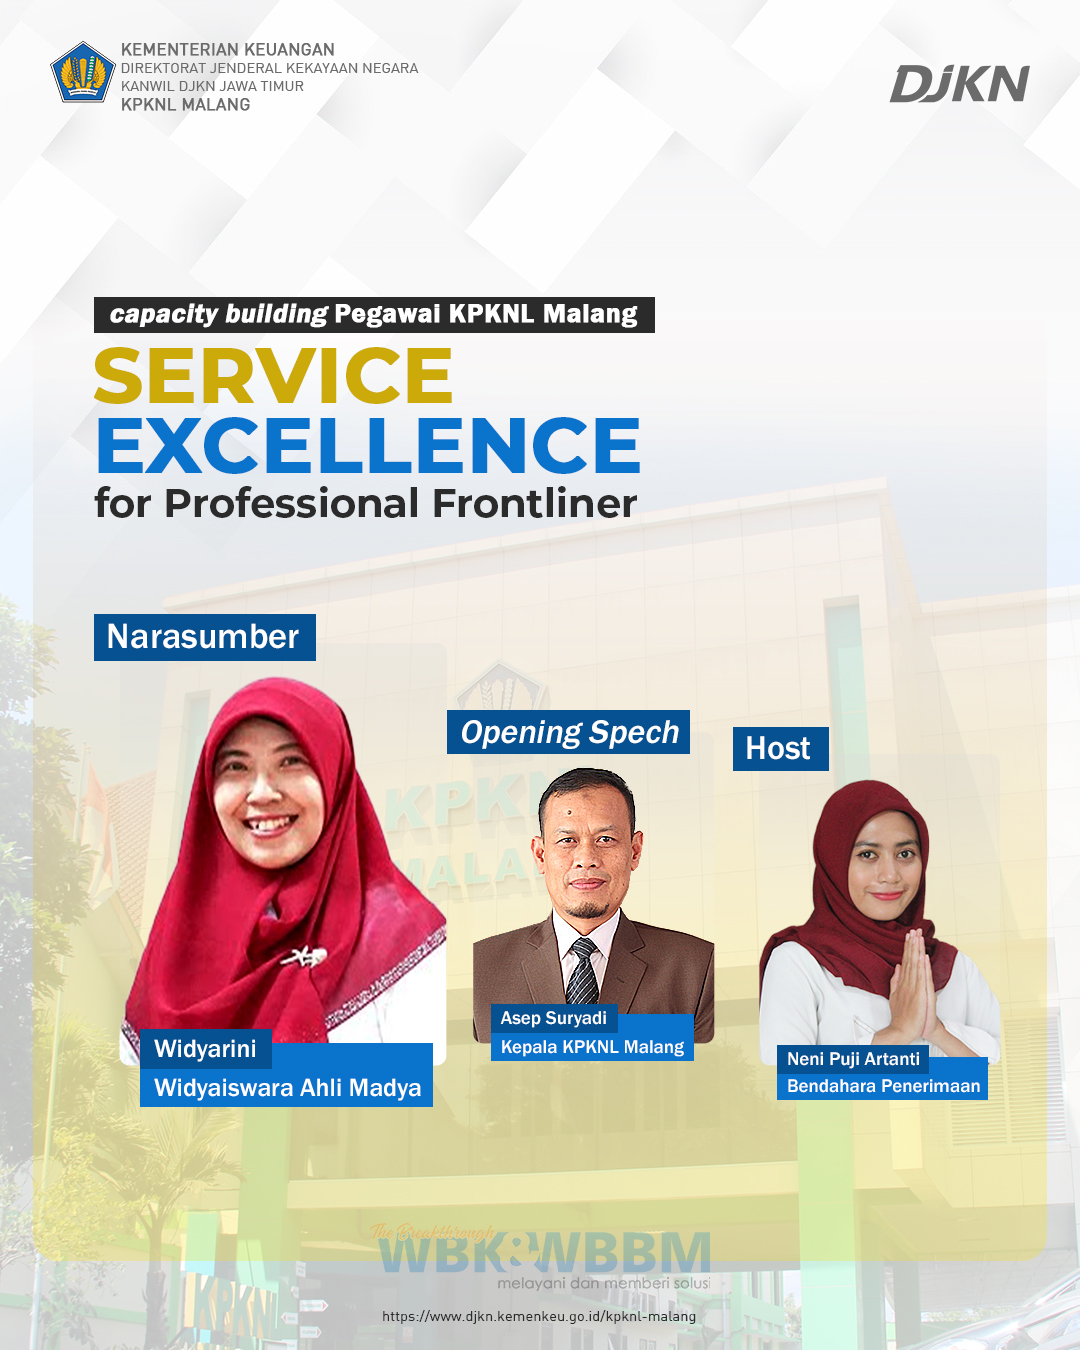 """Capacity Building Pegawai KPKNL Malang """"Service Excellence for Profesional Frontliner"""""""